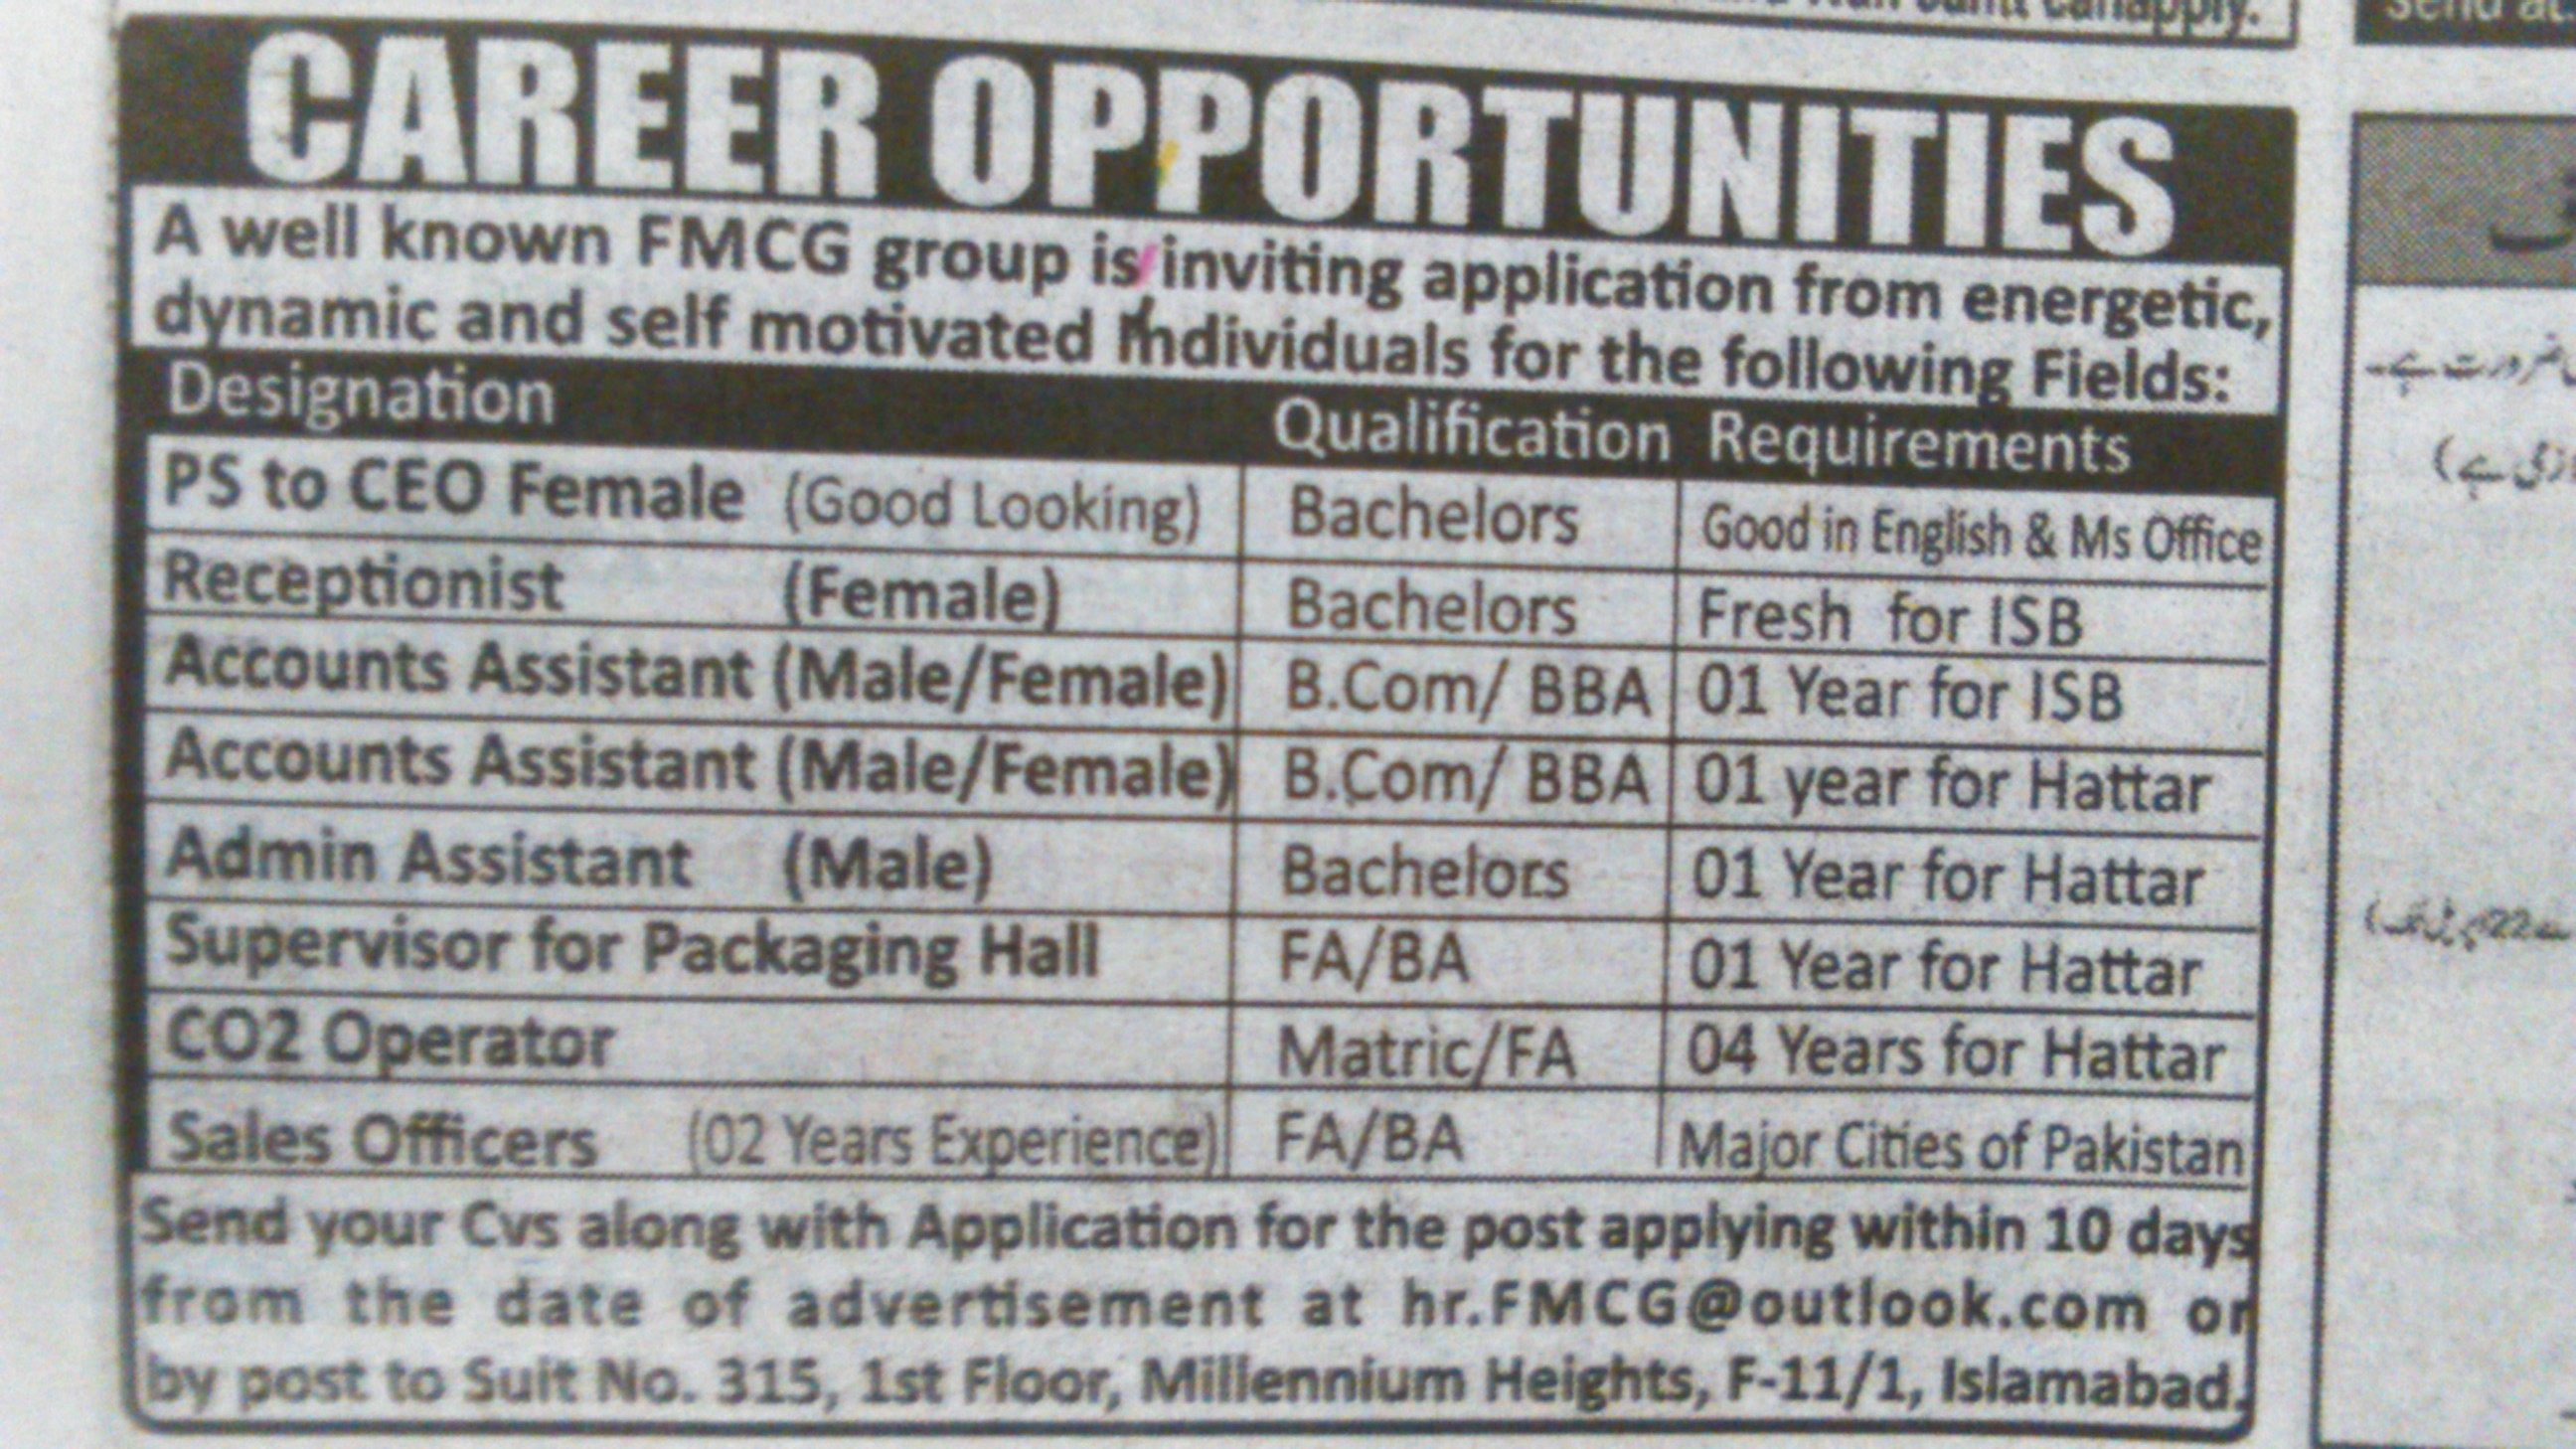 FMCG Group Requires Staff